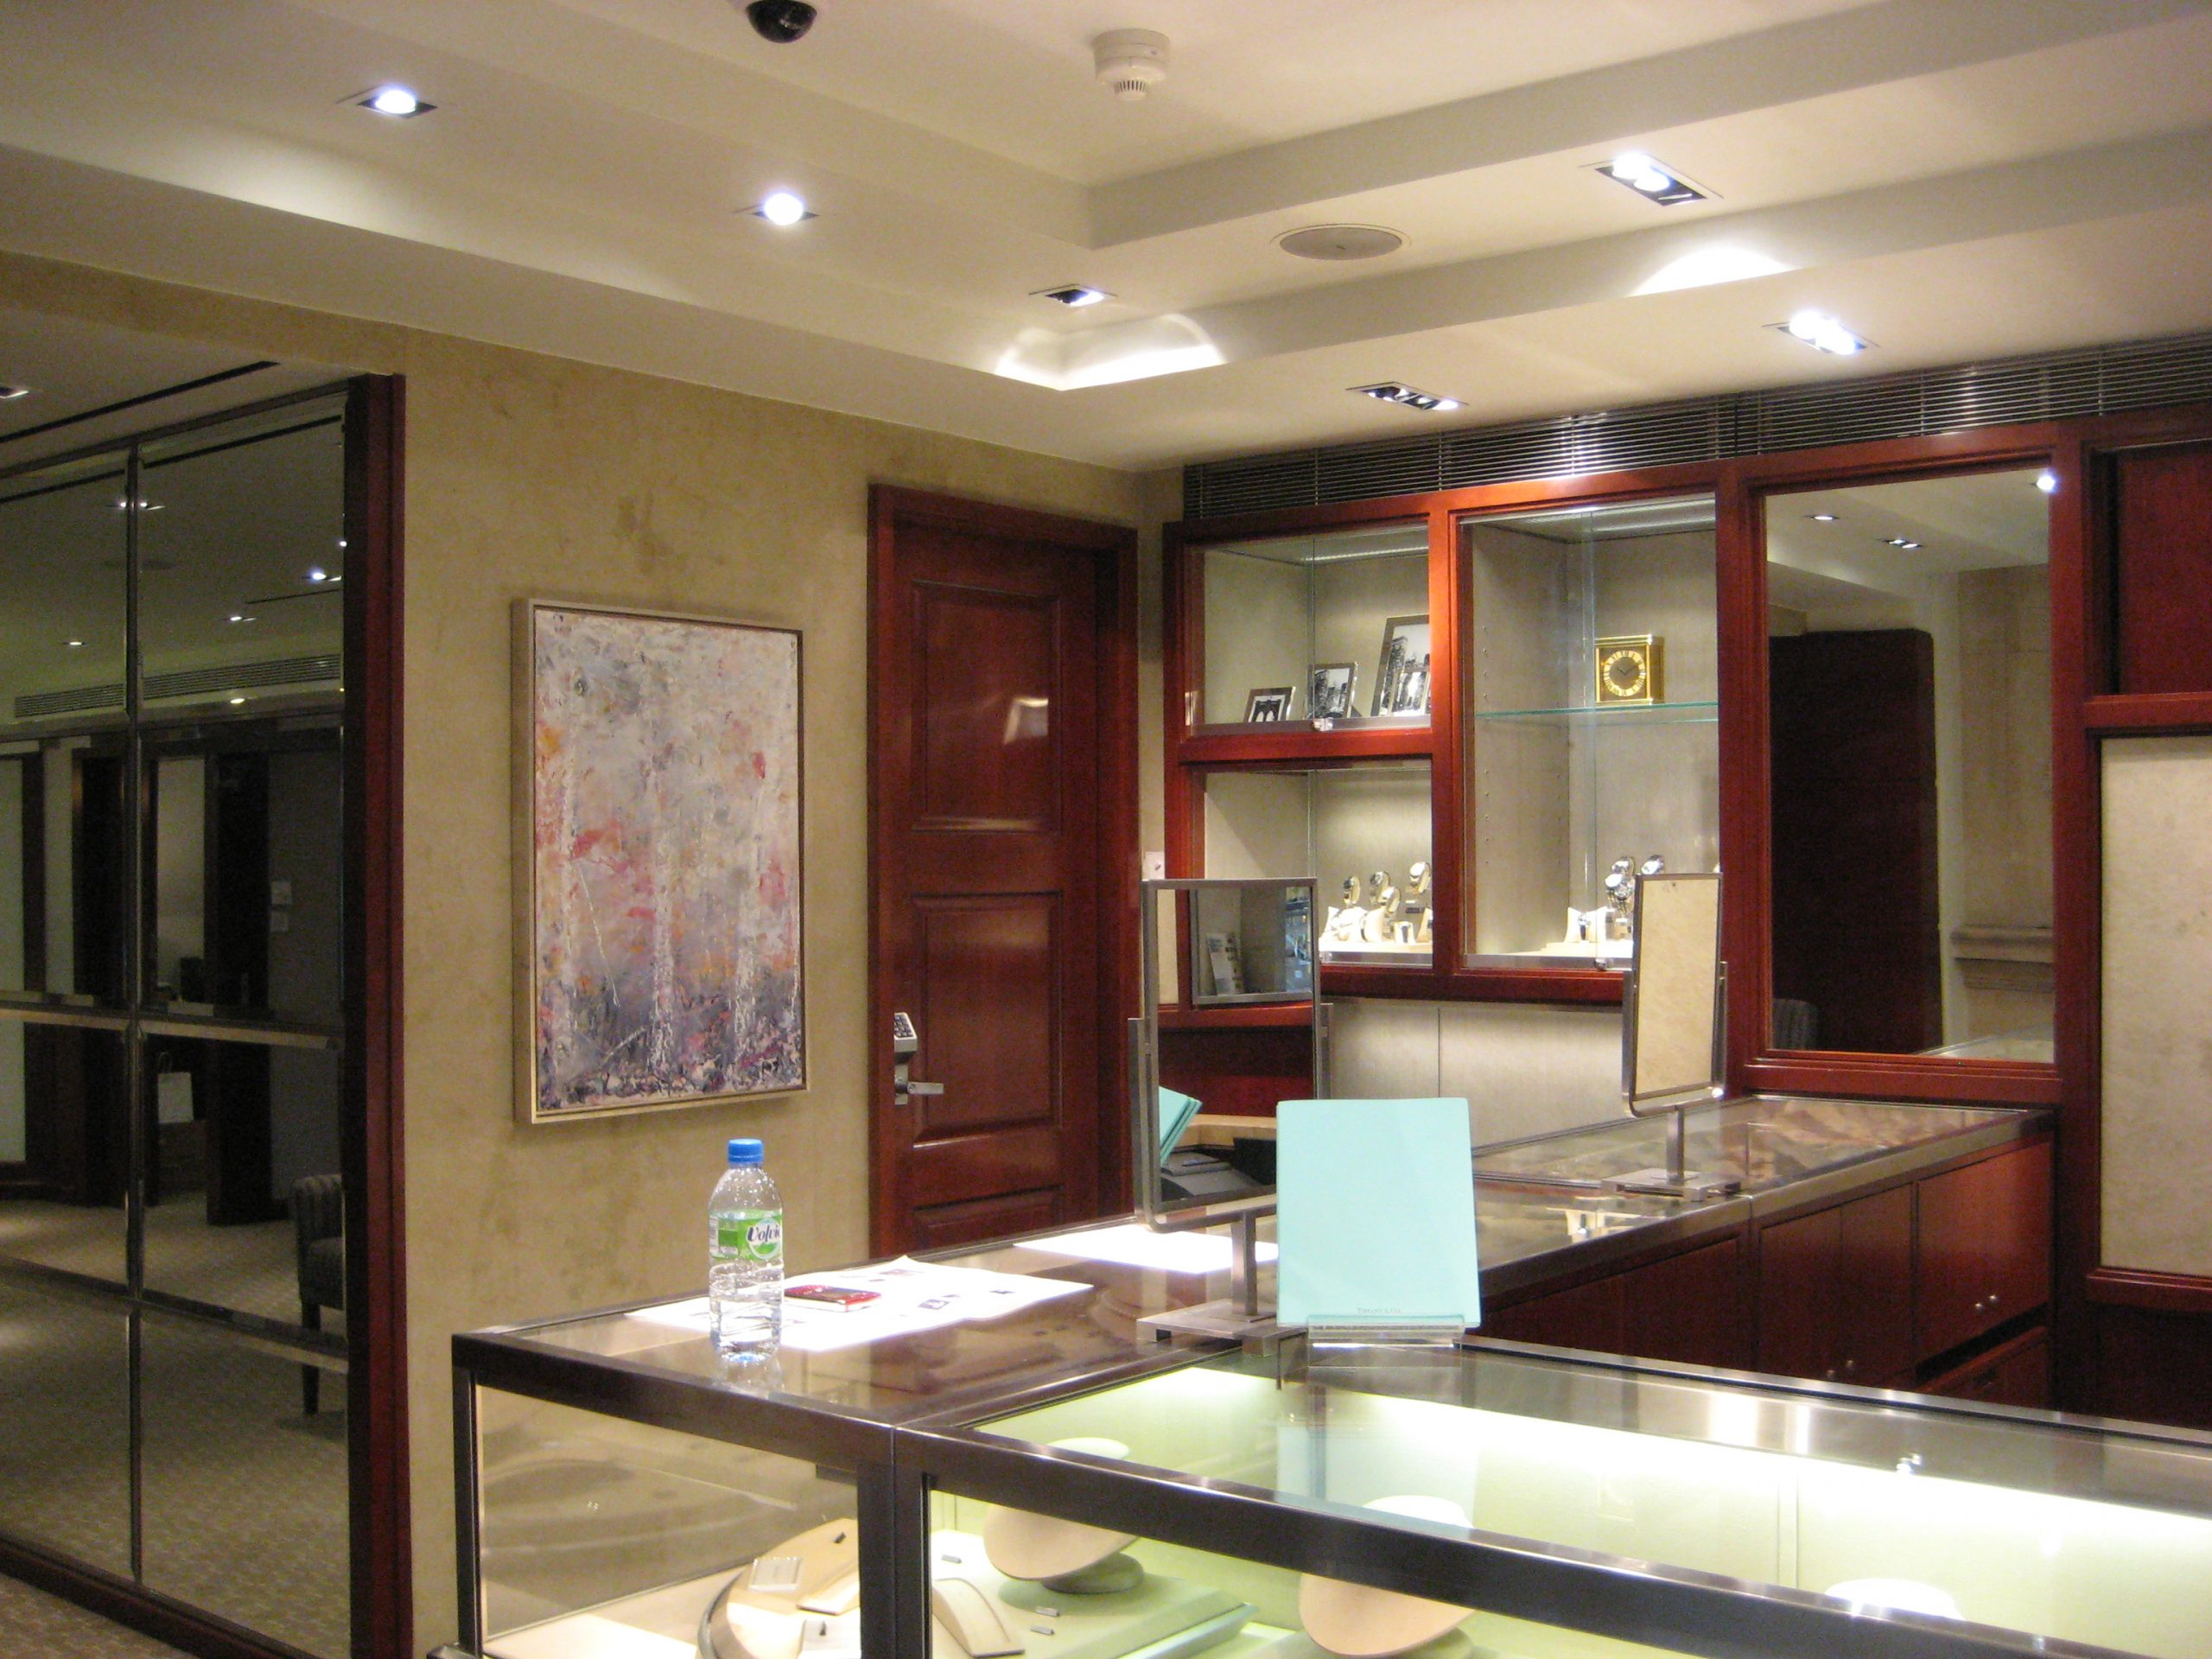 Tiffany & Co. Encaustic and oil paintings